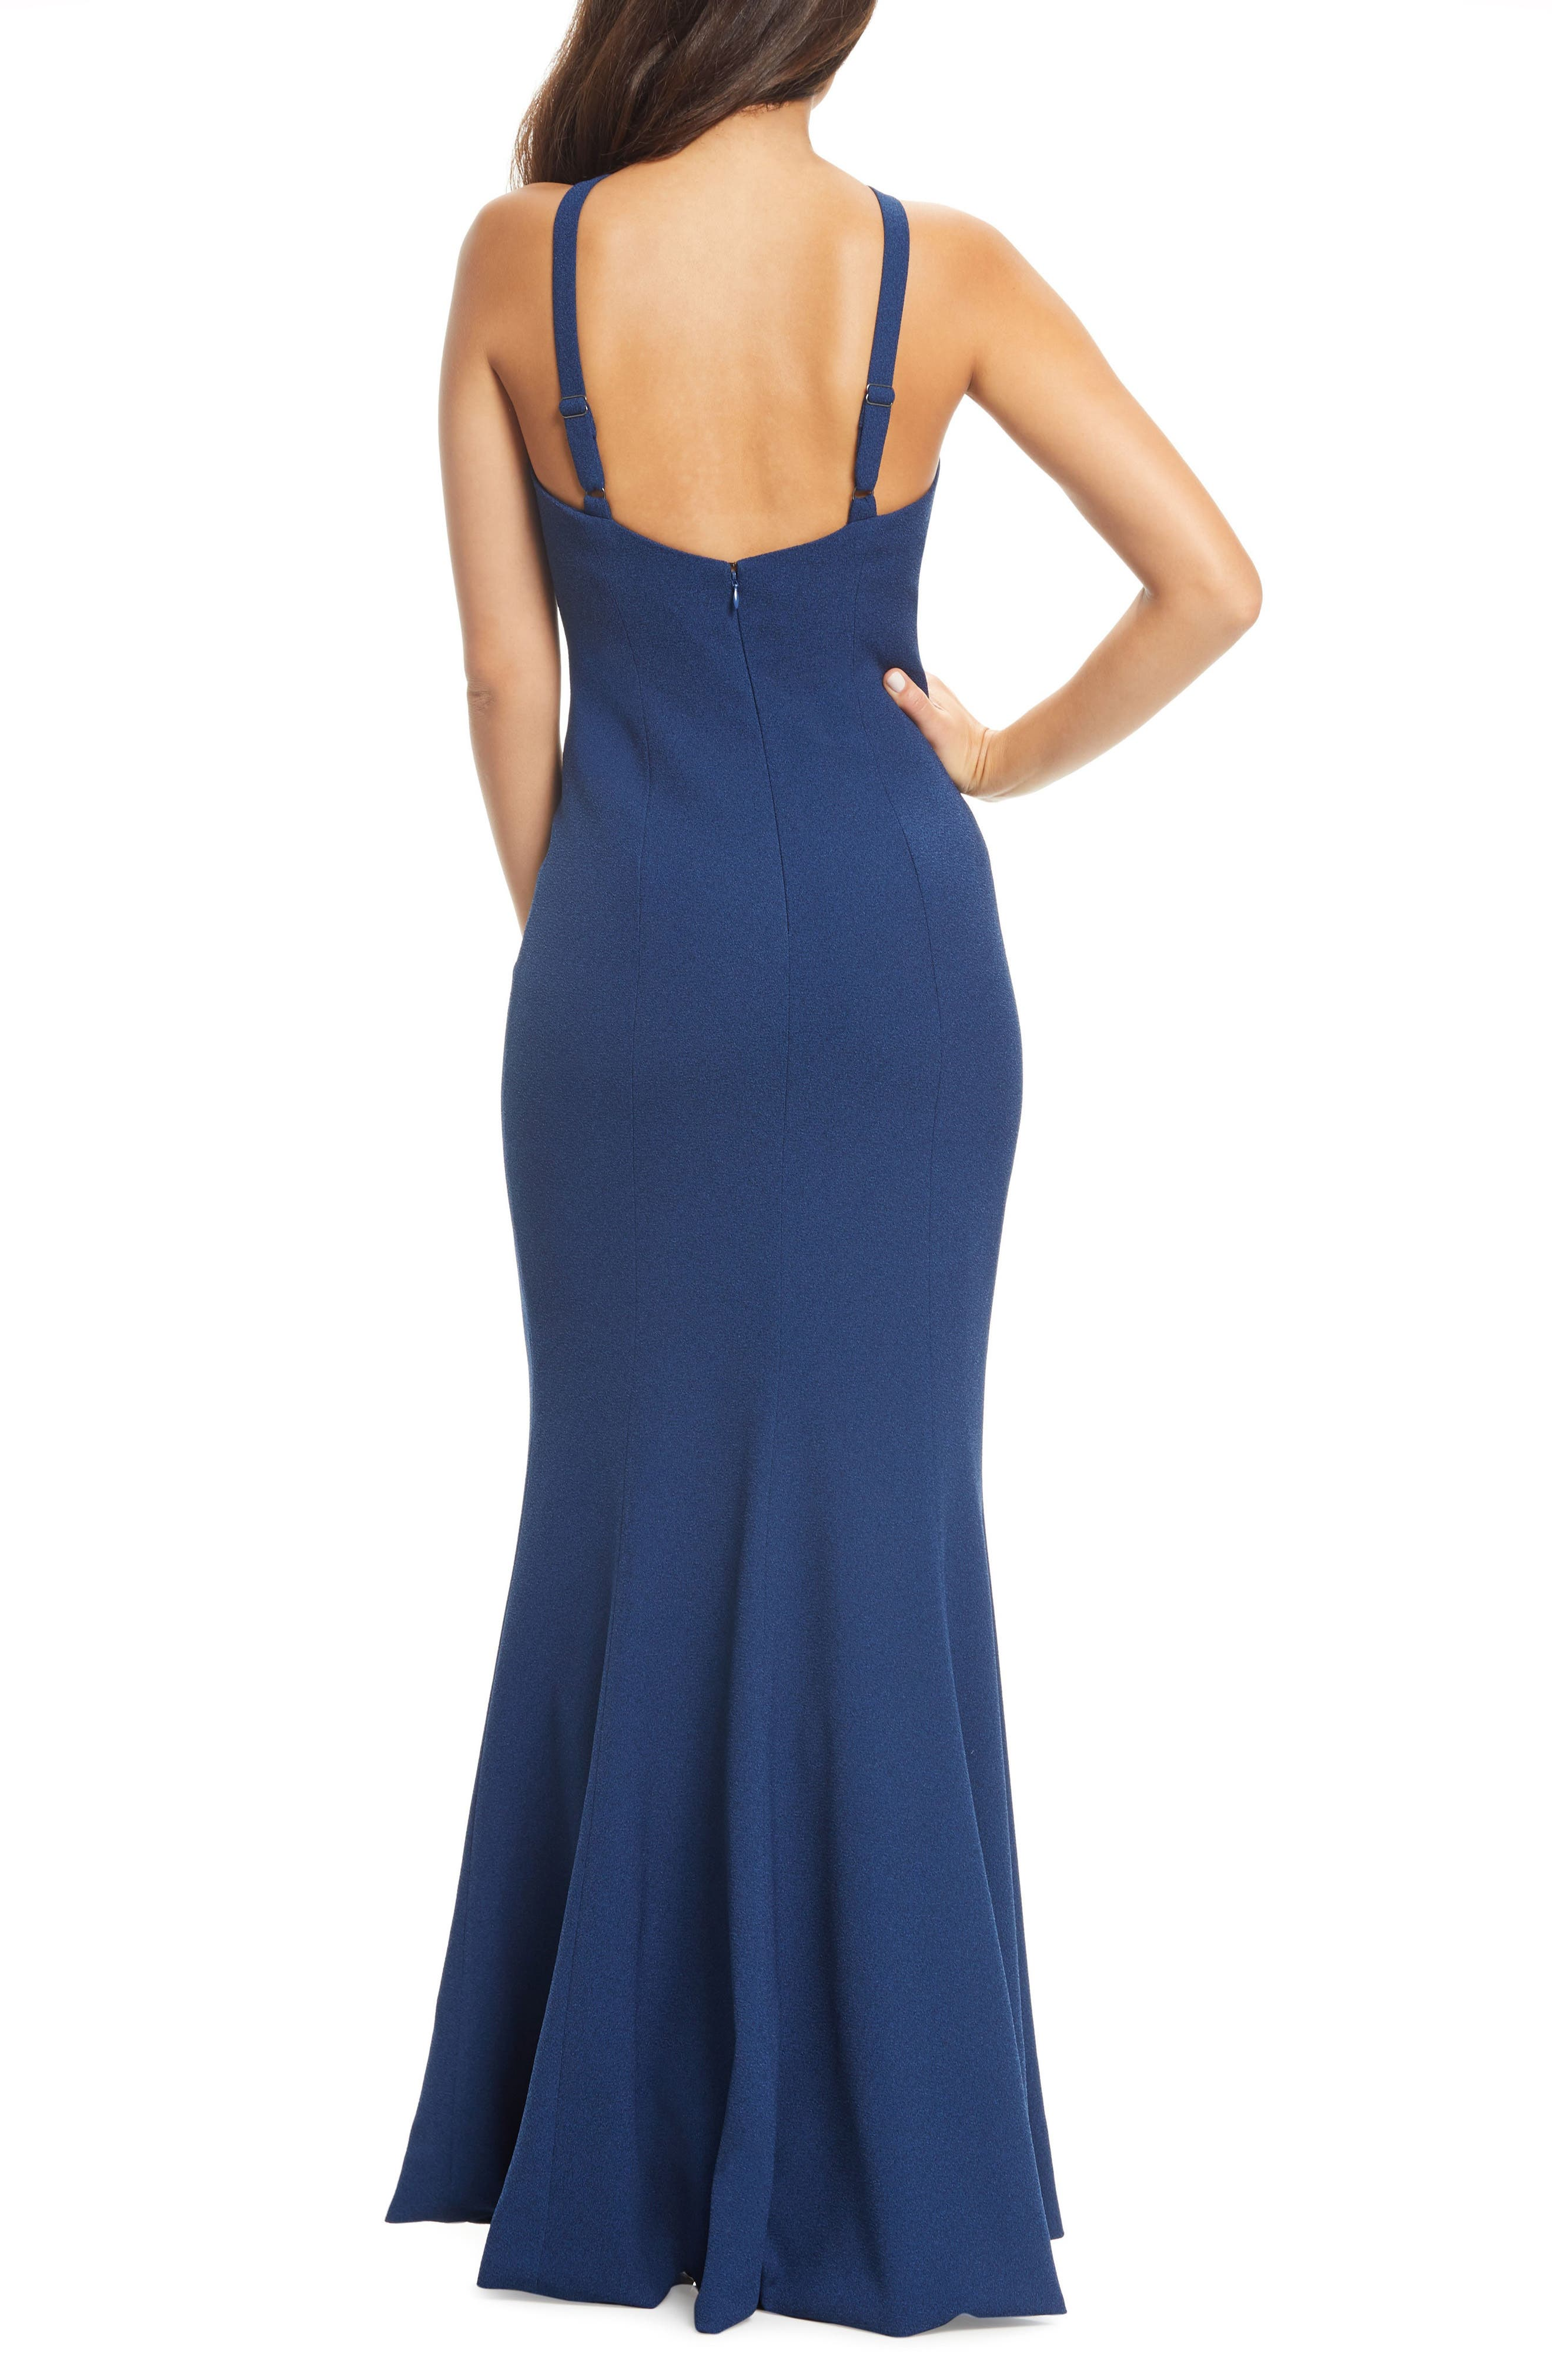 DRESS THE POPULATION,                             Brianna Halter Style Trumpet Gown,                             Alternate thumbnail 2, color,                             PACIFIC